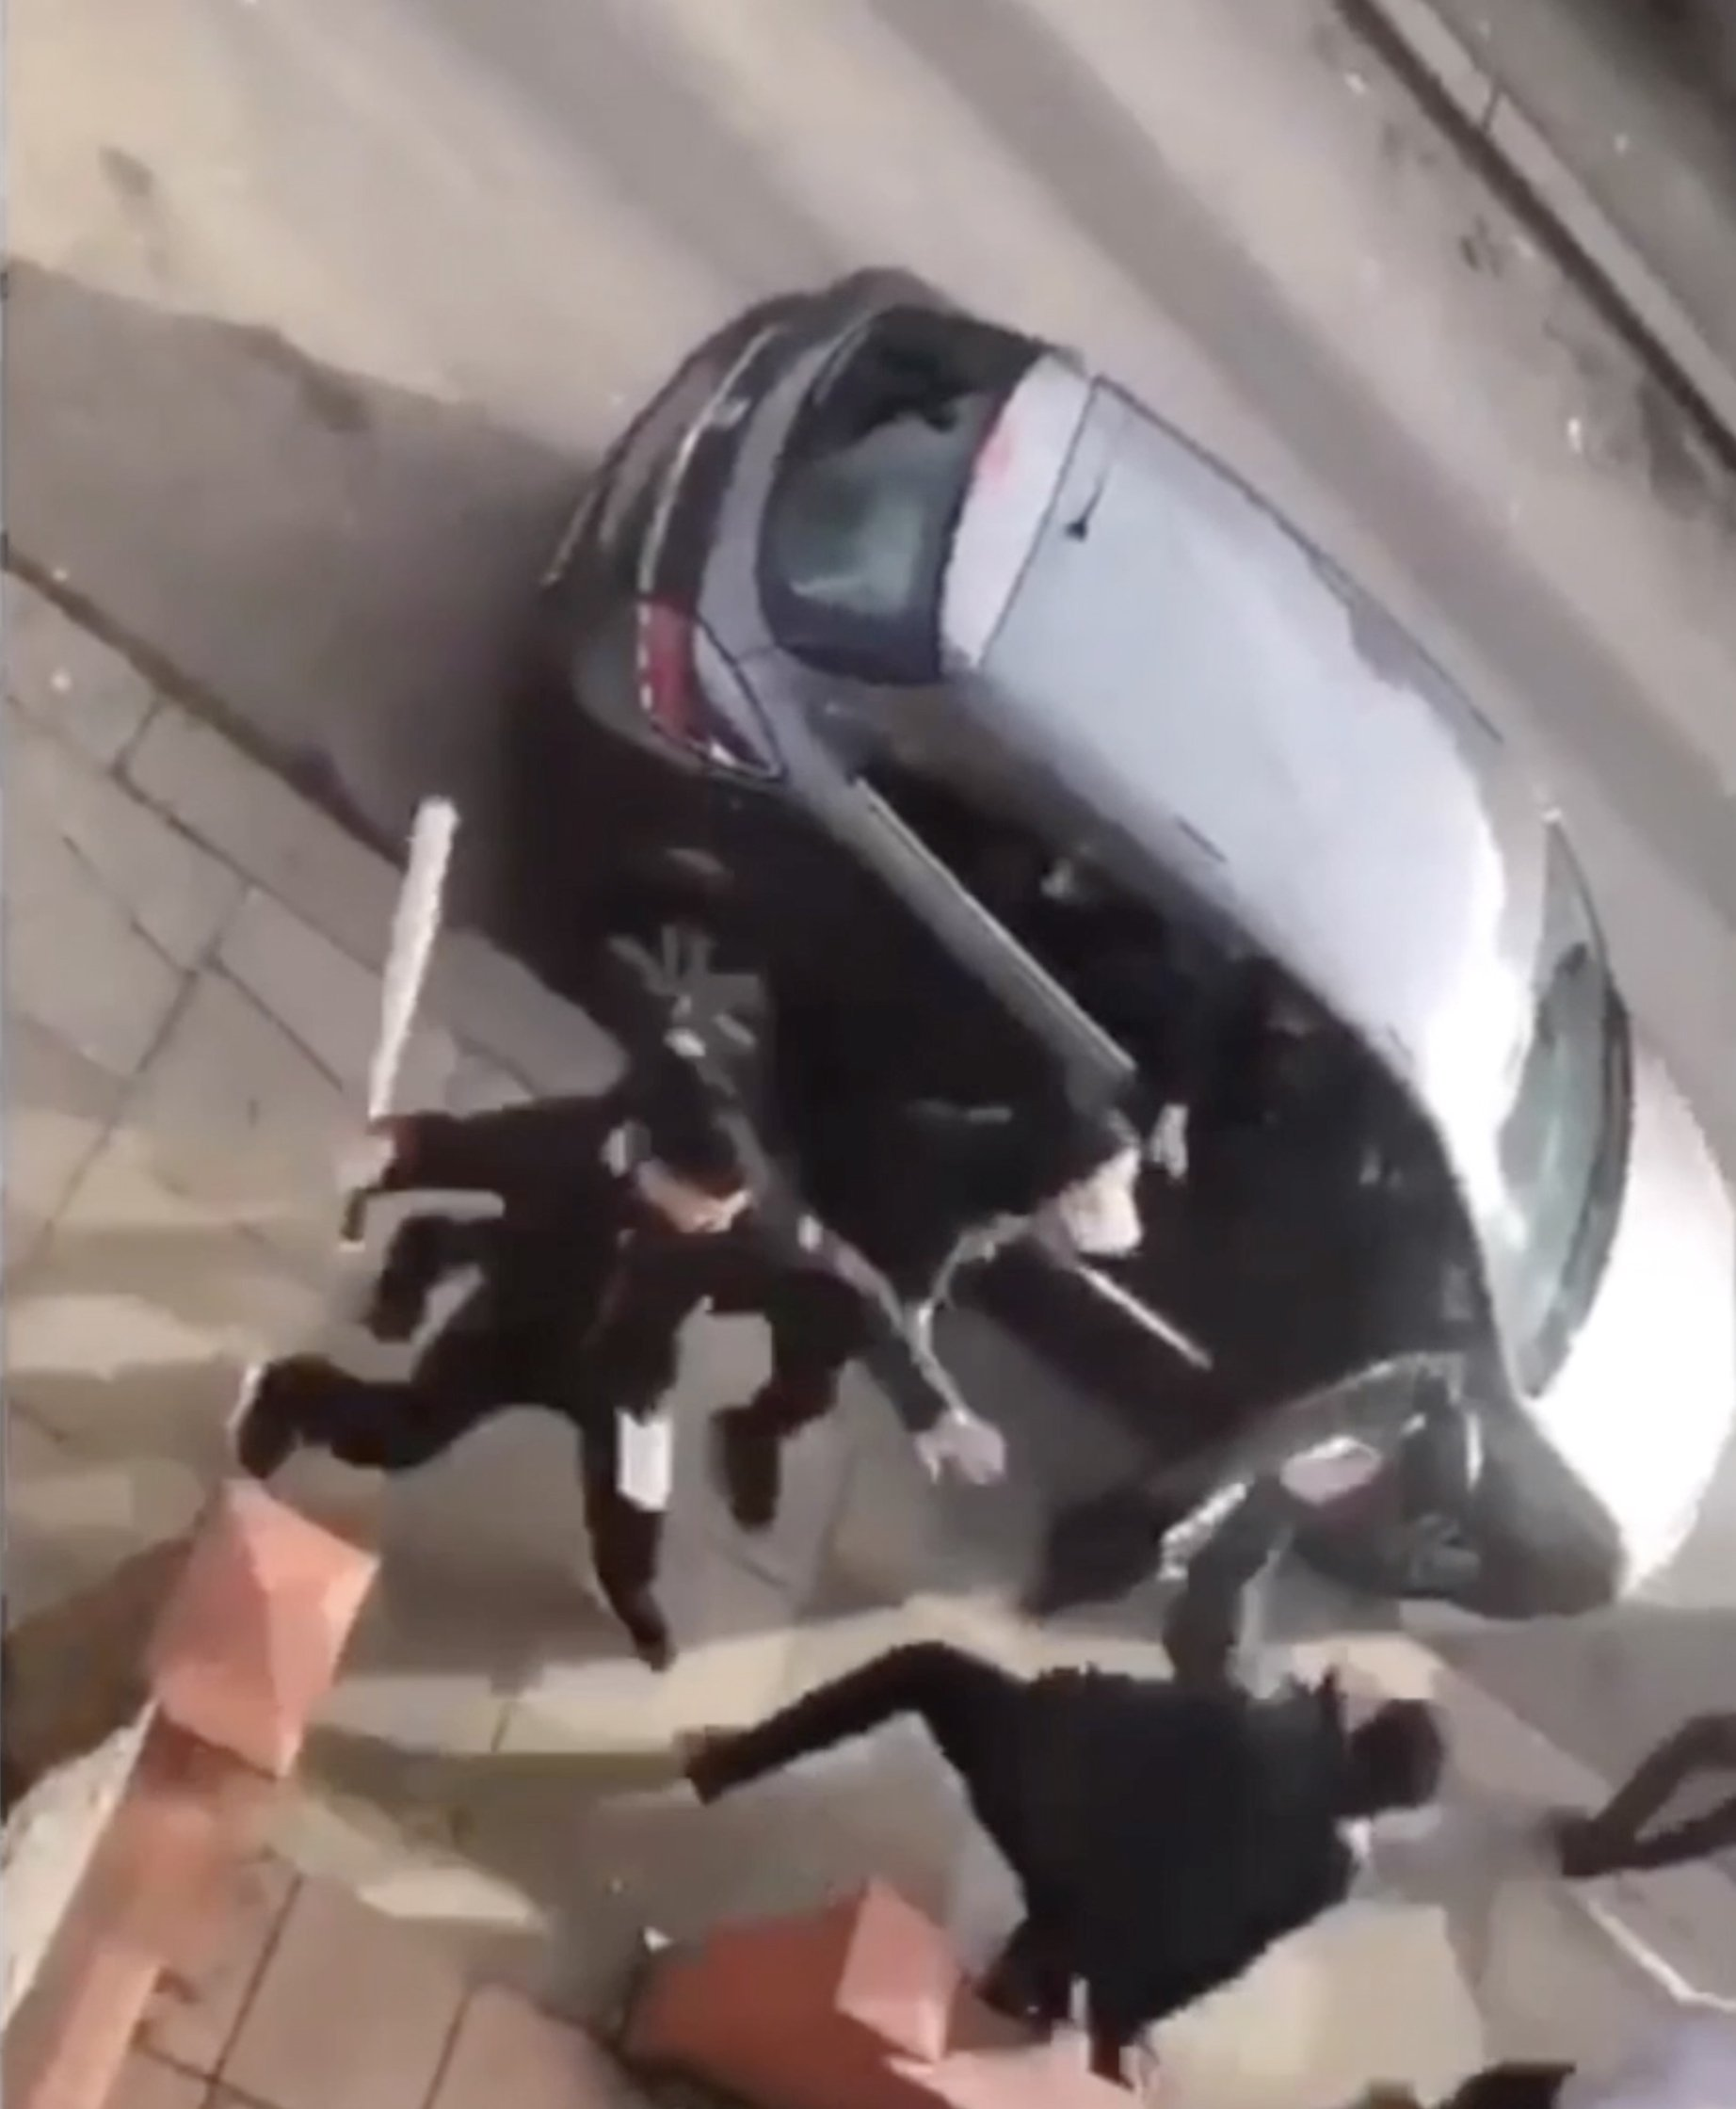 A baseball bat is swung in the direction of one of a young man's head which it connects with, Luton, Bedfordshire, filmed last week (February 2019). THIS is the moment a violent mass brawl erupted between five men on a residential street in Luton ? which ends in one male beating another with a BASEBALL BAT. The men can be seen aggressively fighting each other on Saxon Road in Luton ? the same street that hit headlines in September when gangs armed with baseball bats clashed and left a teenager fighting for his life. In the shocking clip, a terrified woman can be seen desperately screaming for the police in a parked car ? whilst a thug repeatedly bashes another man in the head with a baseball bat on the residential street. The incident is believed to have taken place last week. It is unknown why the fight took place but the footage has been shared across social media. ... SEE COPY AND VID ... PIC BY NEWS DOG MEDIA ... 0121 517 0019